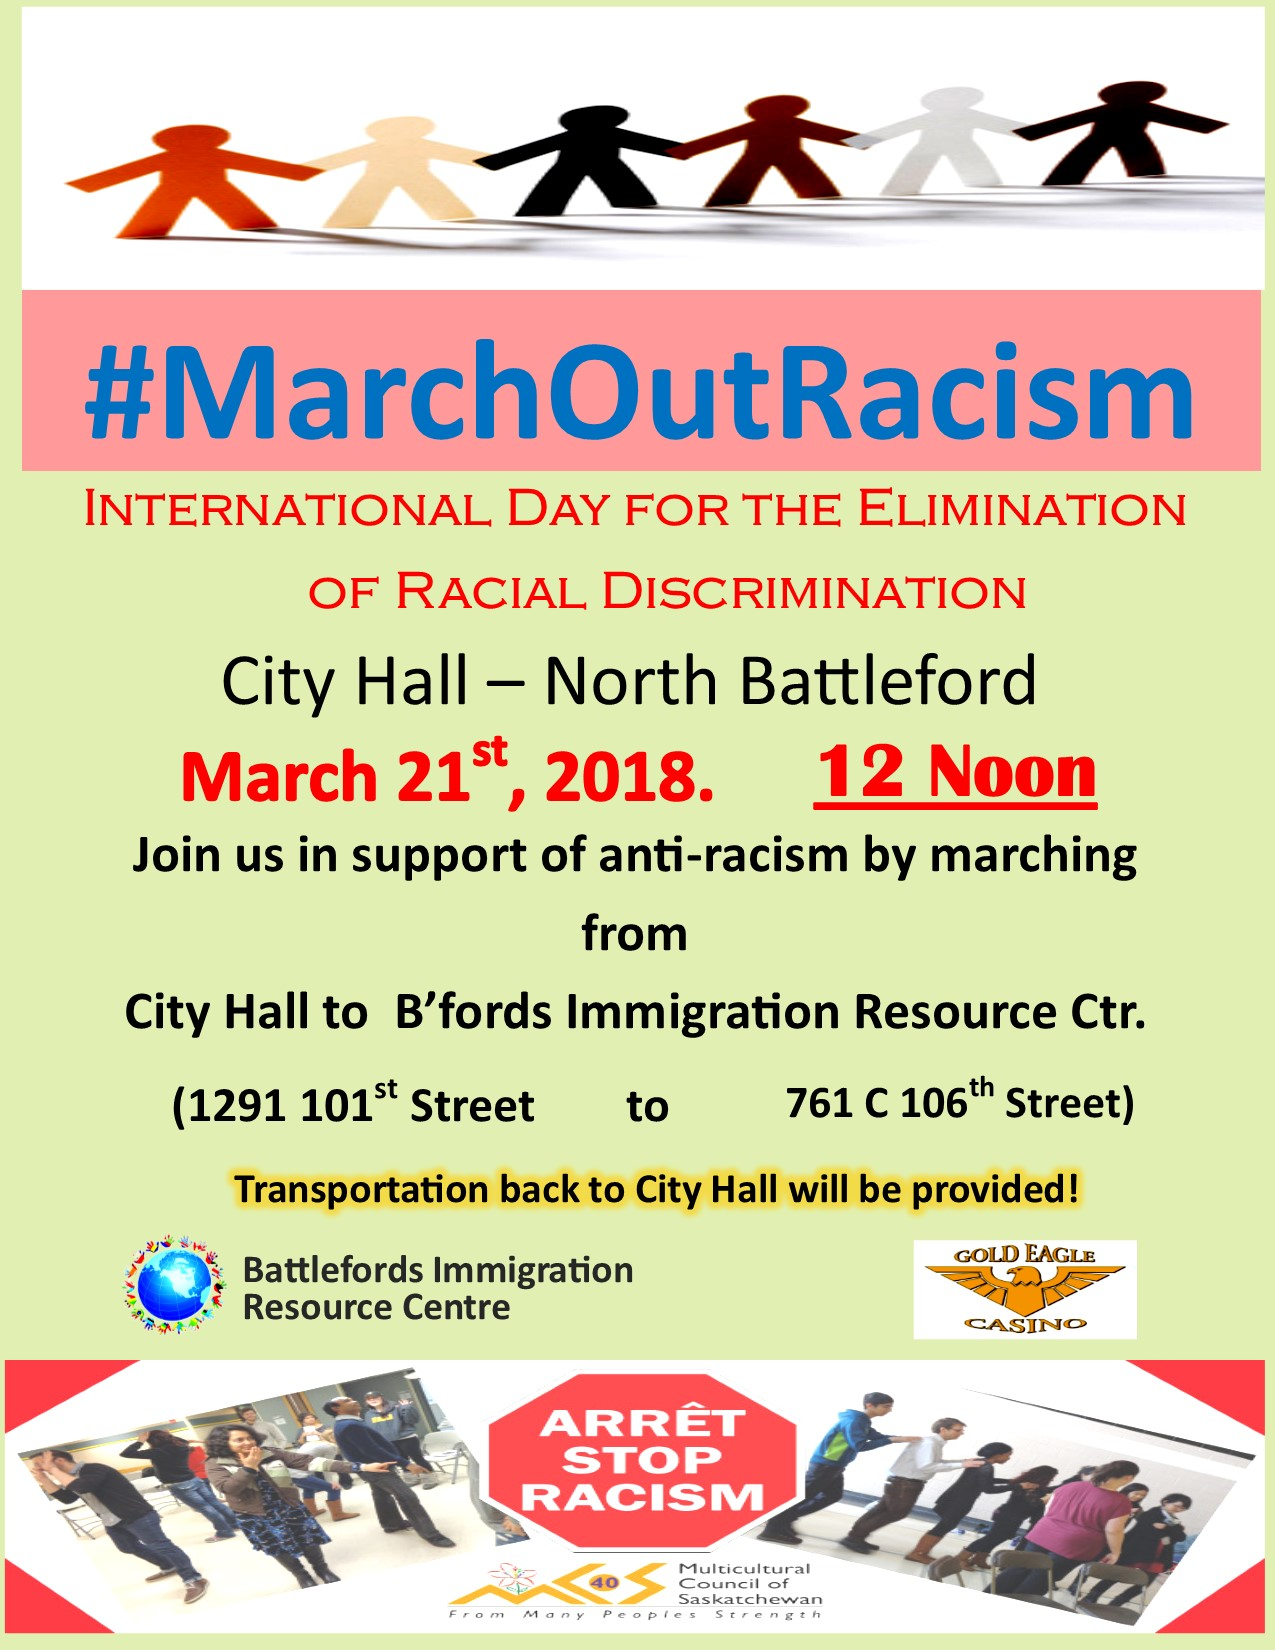 March out Racism